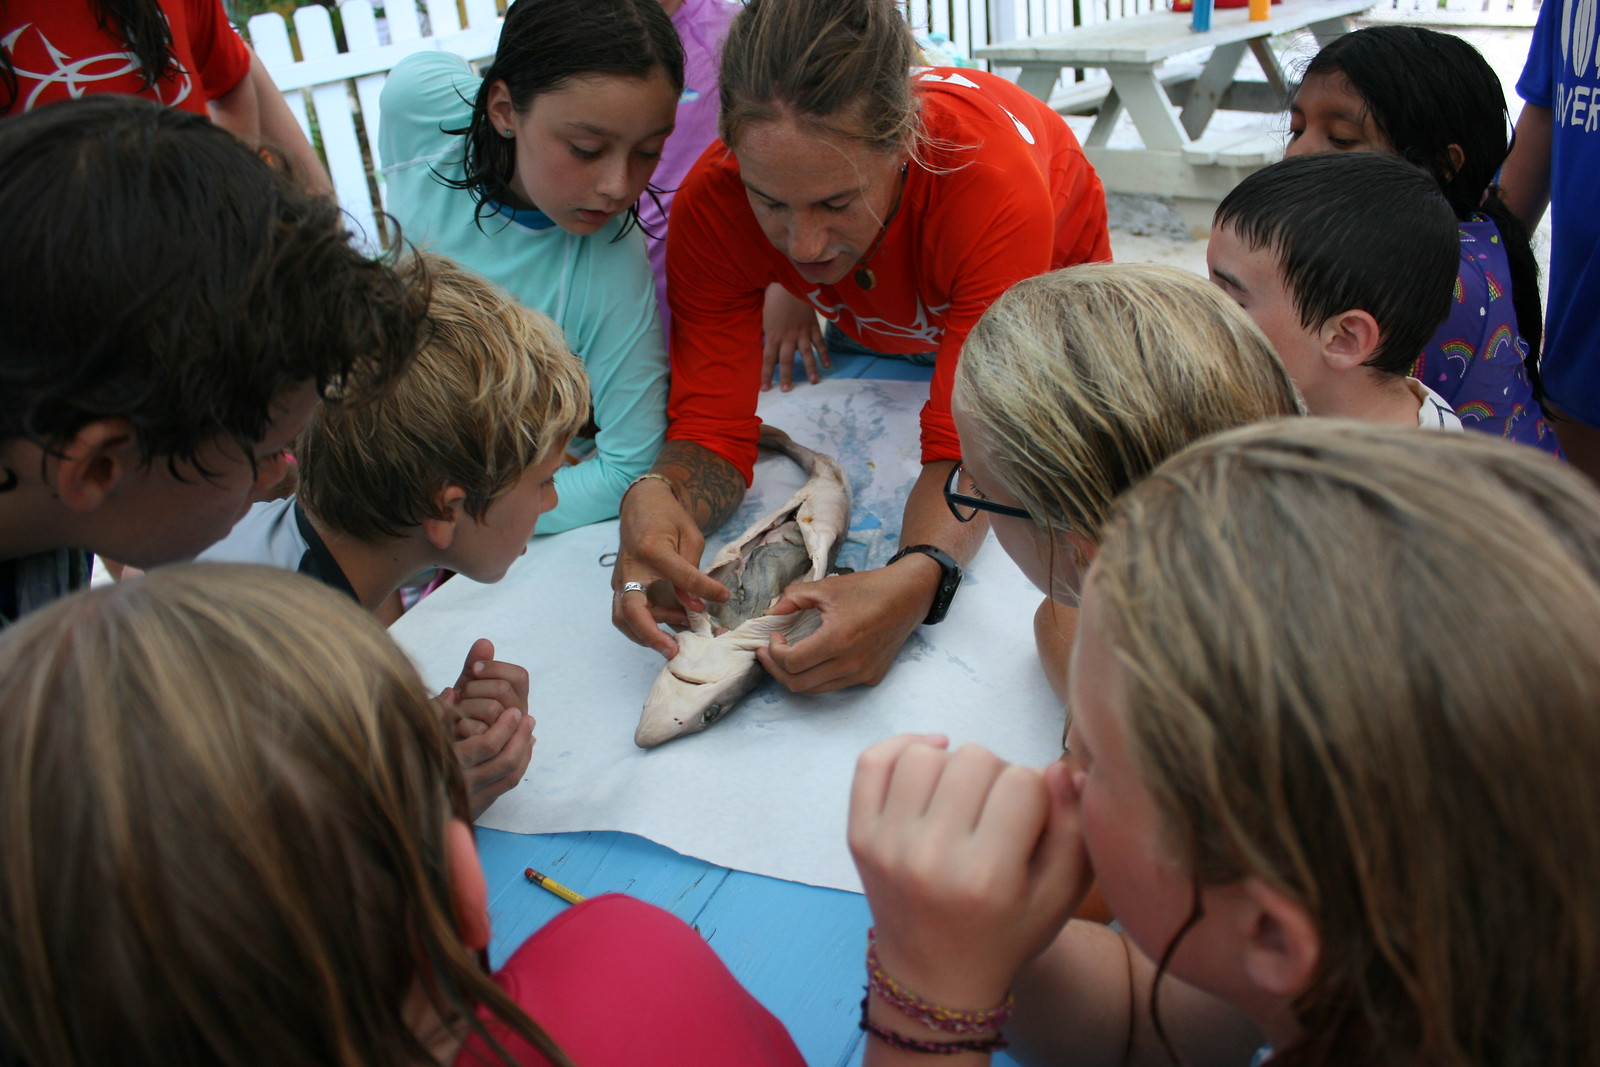 Campers dissected a shark during Shark of a Whale Week.